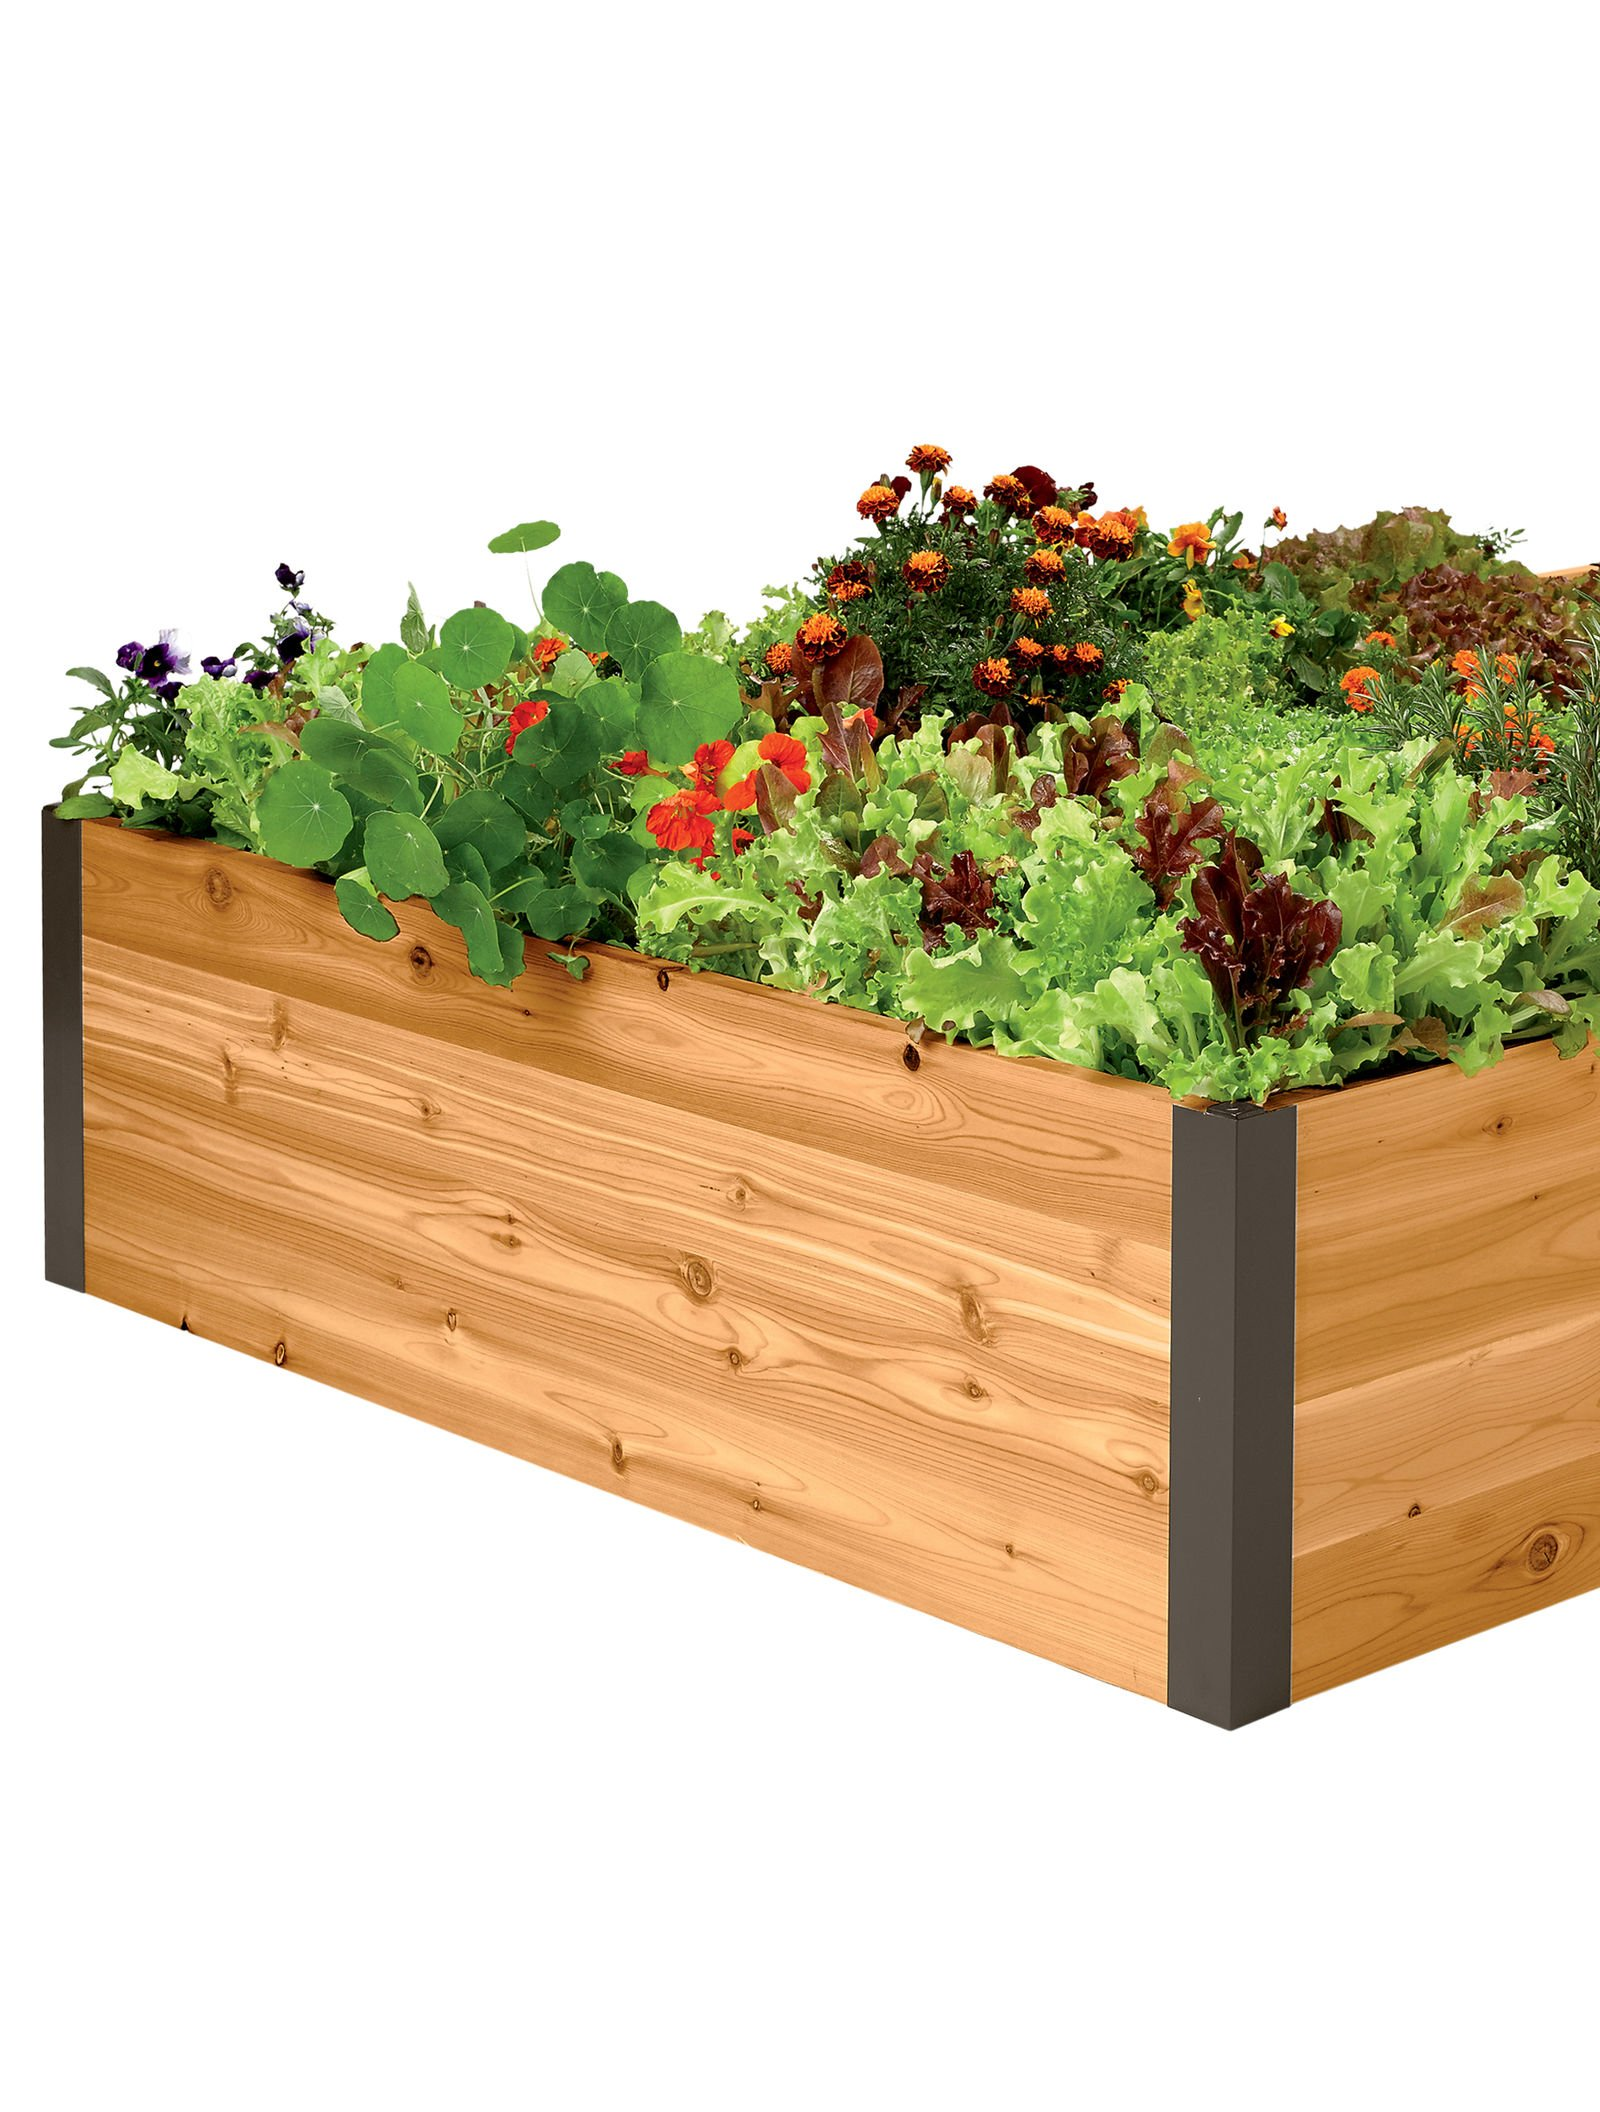 Cedar Raised Garden Bed 4' x 12' x 15'' by Gardener's Supply Company